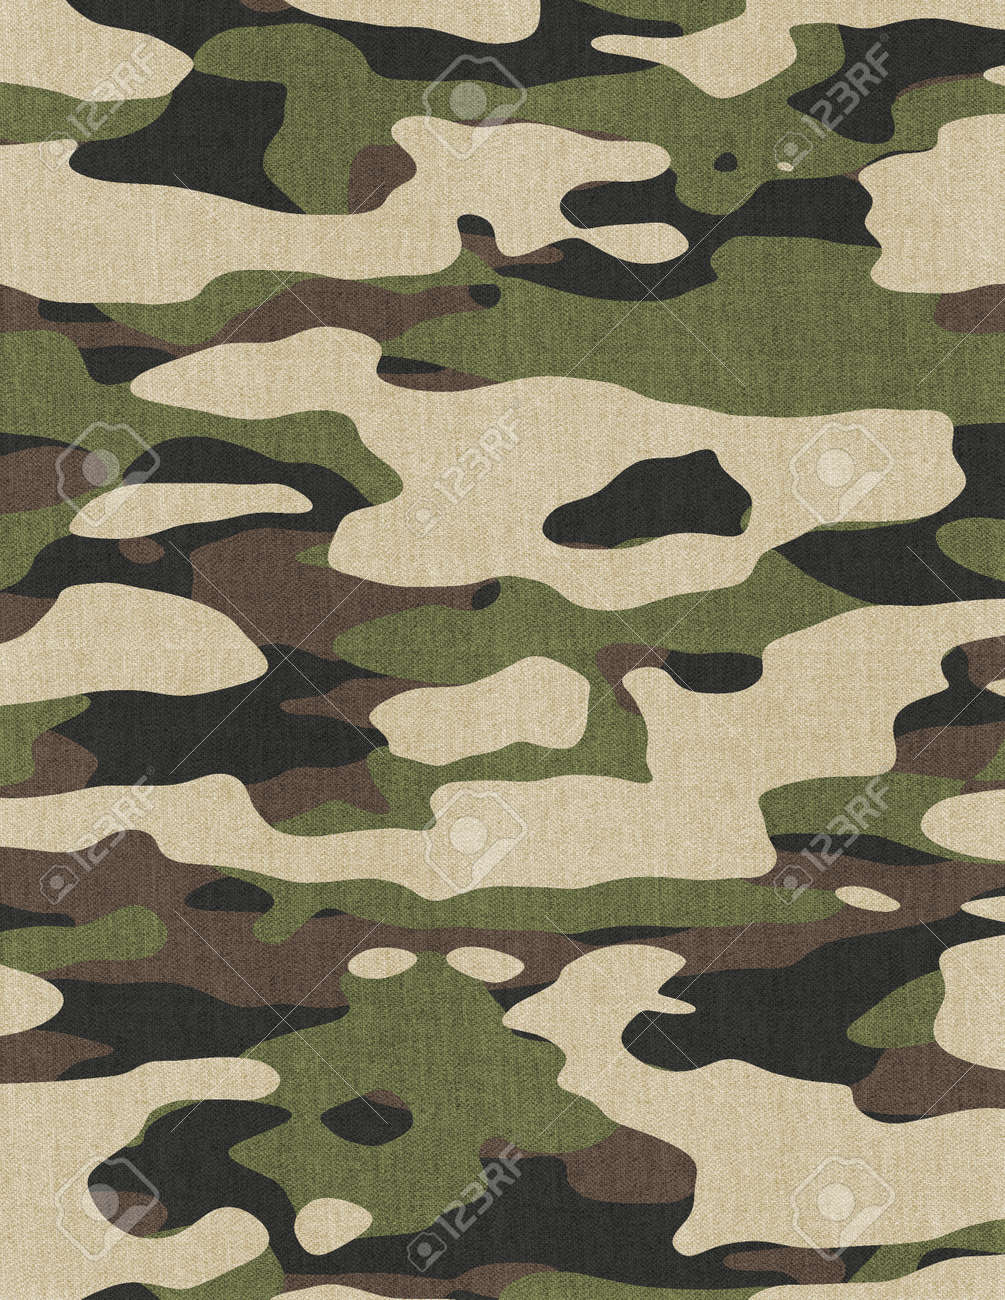 Pixelated Military Camouflage Print Template. - 169697601